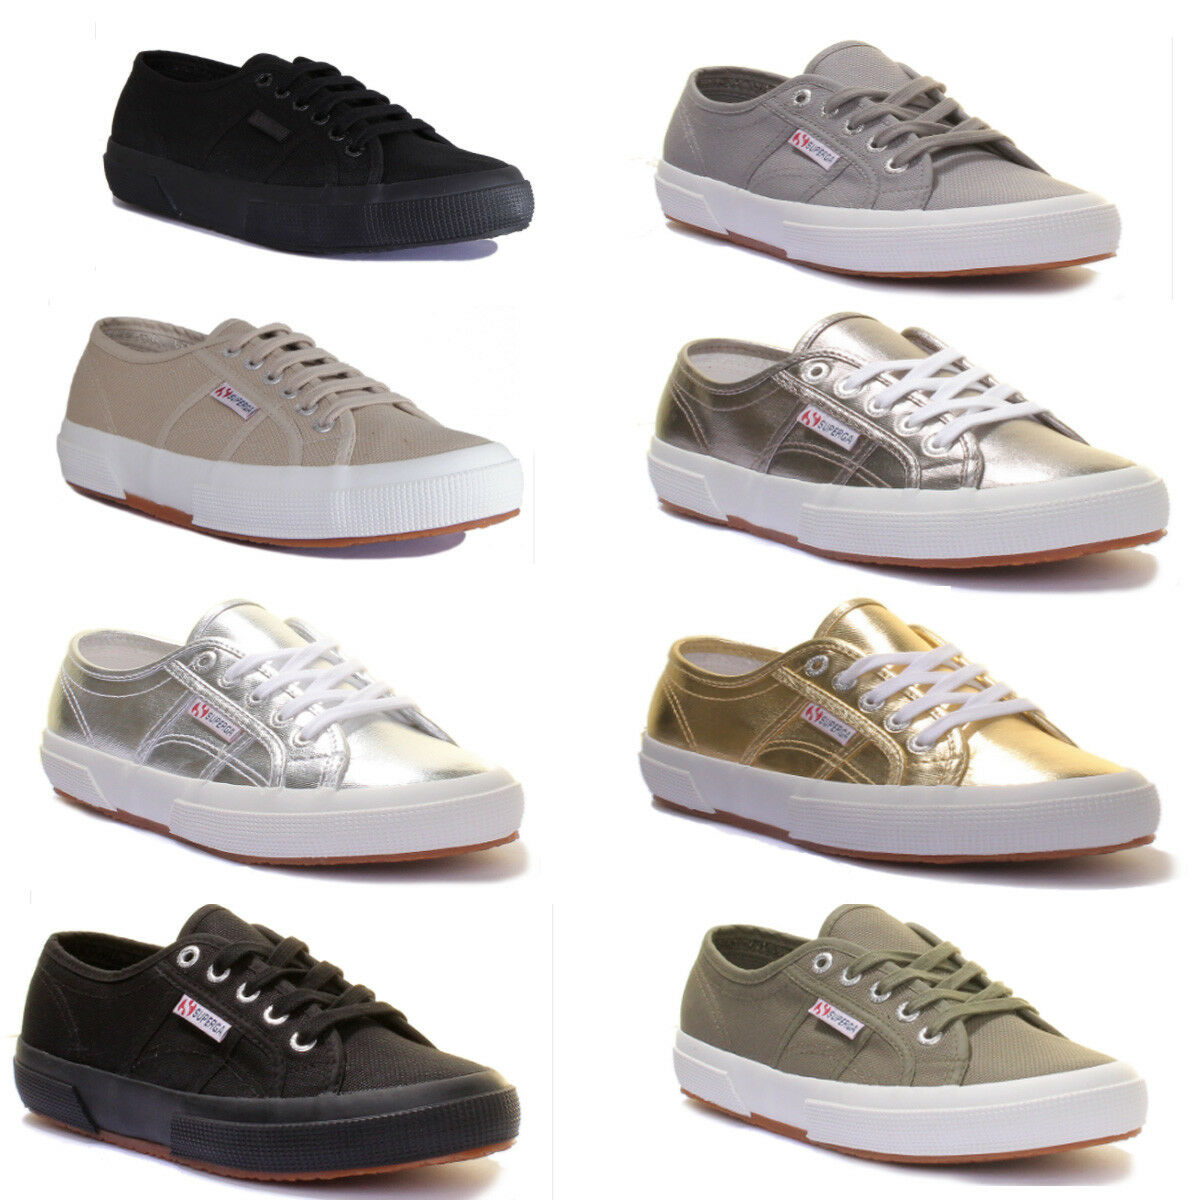 Superga 2750 2750 2750 Cotu Classic kvinnor duk Taupe Lace Up Trainers UK Storlek 3 - 8  köp 100% autentisk kvalitet